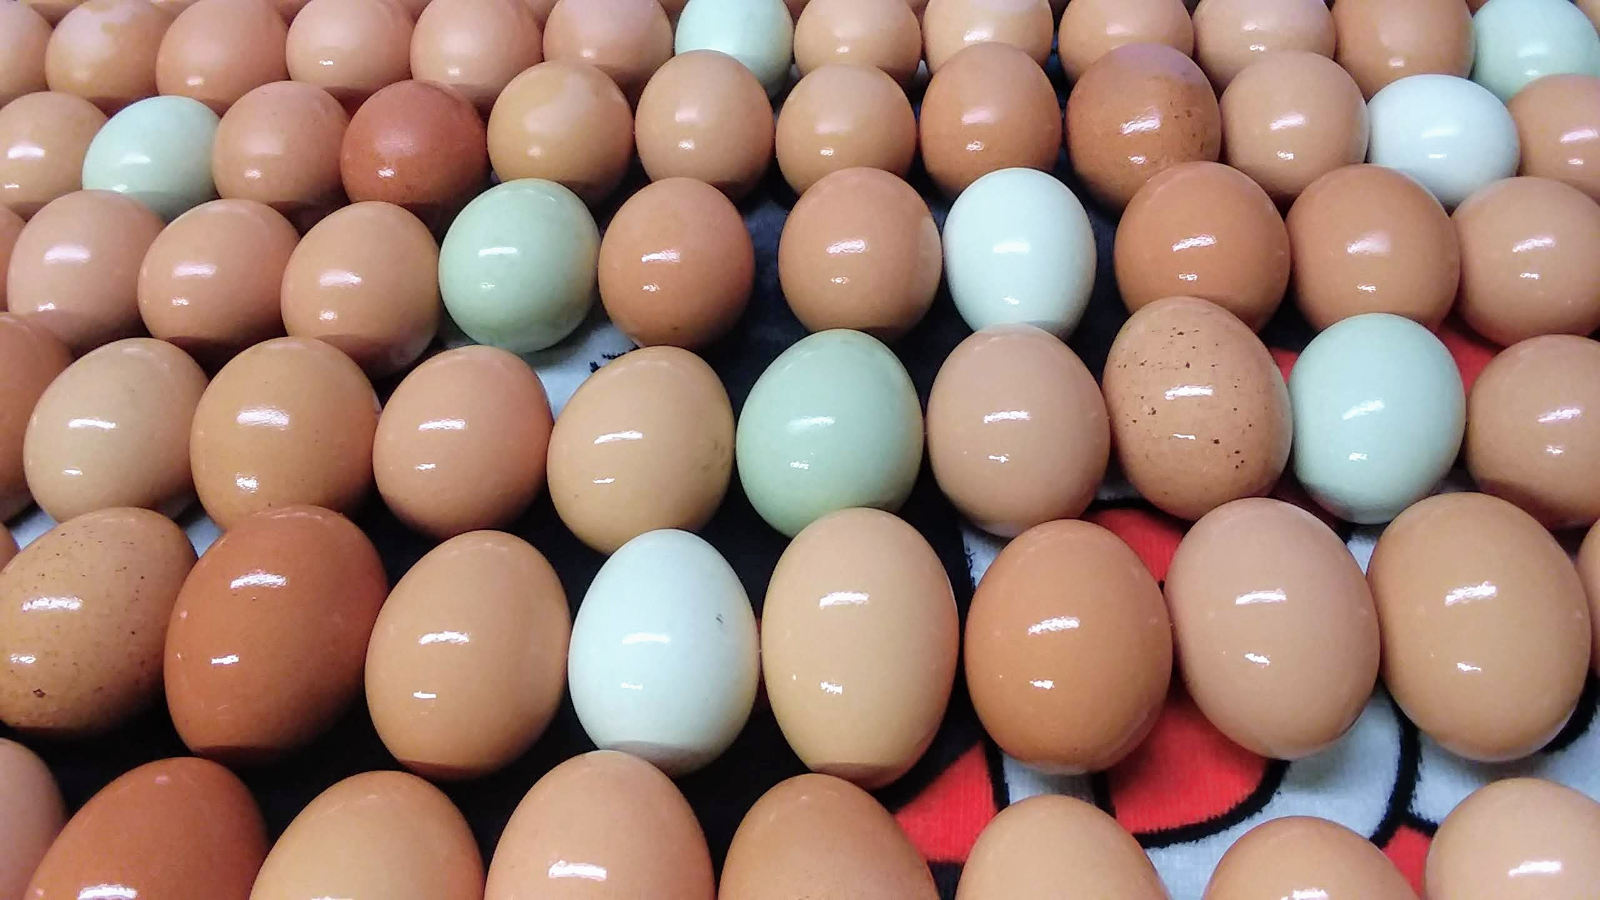 pasture-raised-organic-eggs-xlarge